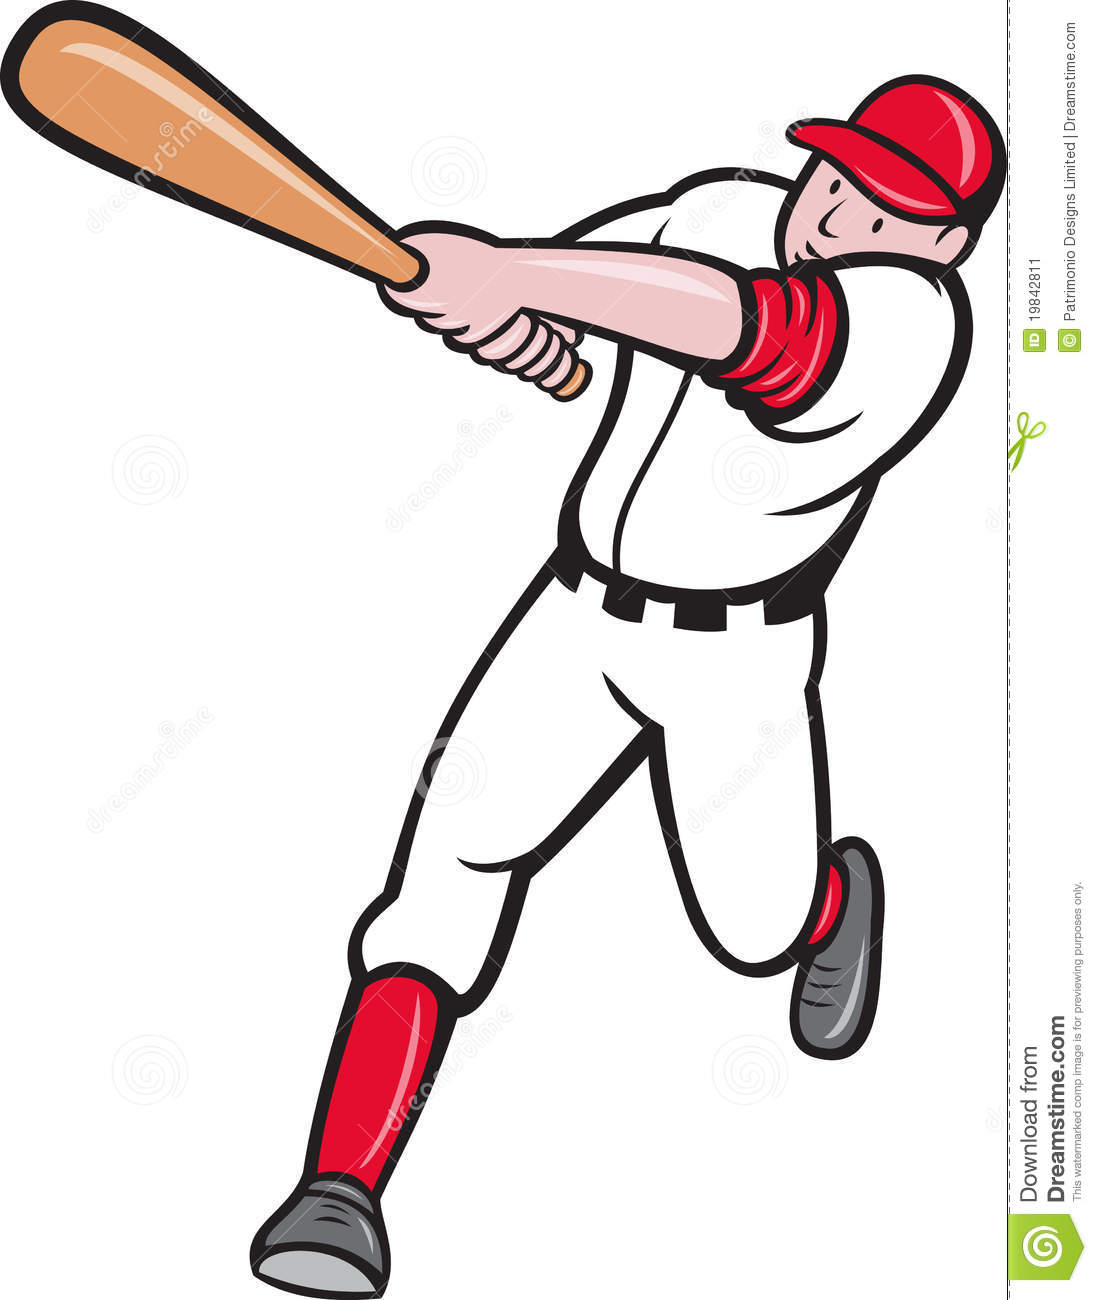 6834 Baseball Player Cliparts Stock Vector And Royalty